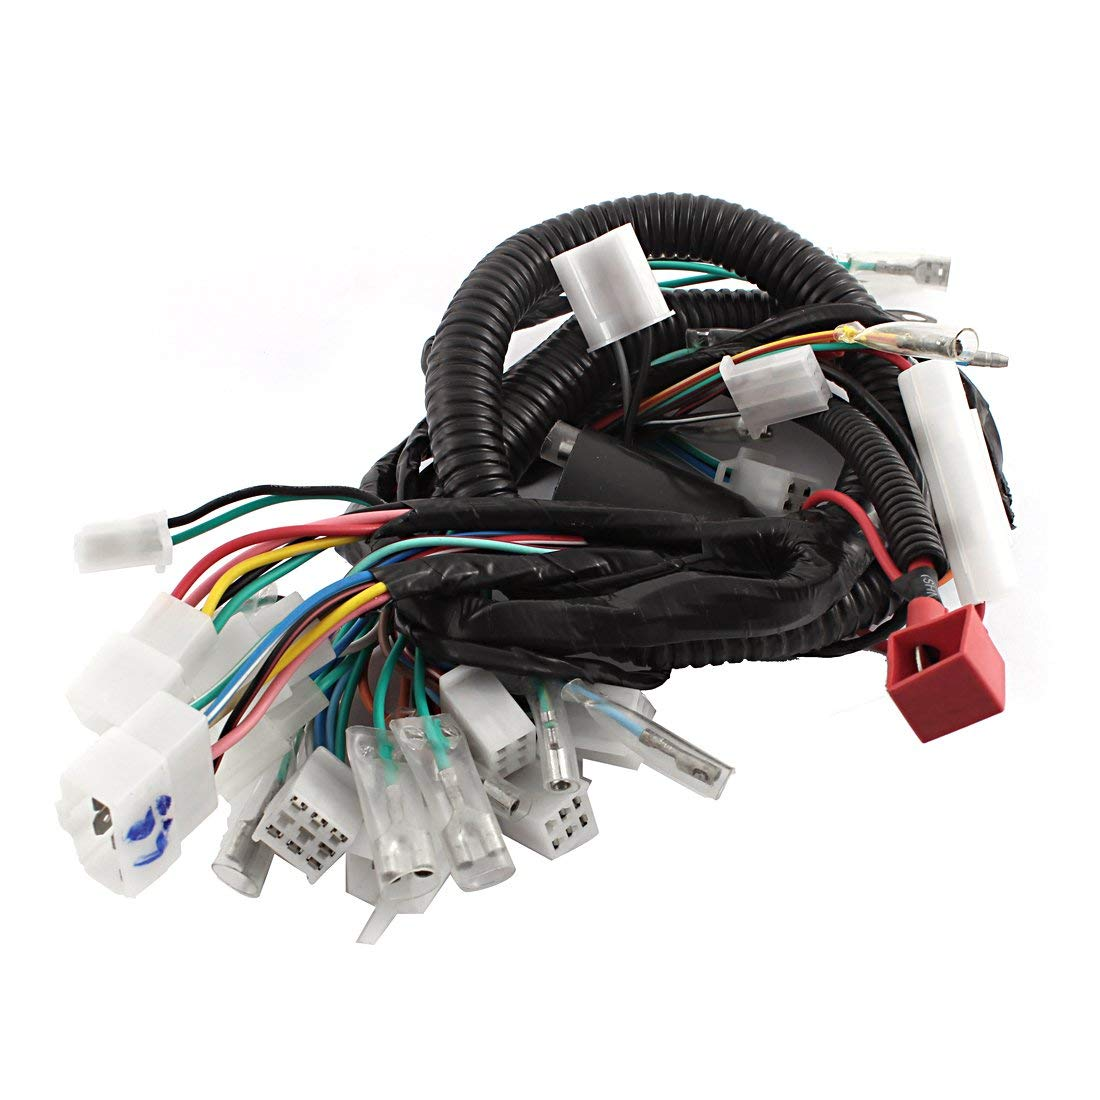 hight resolution of motorcycle ultima complete system electrical main wiring harness for gs